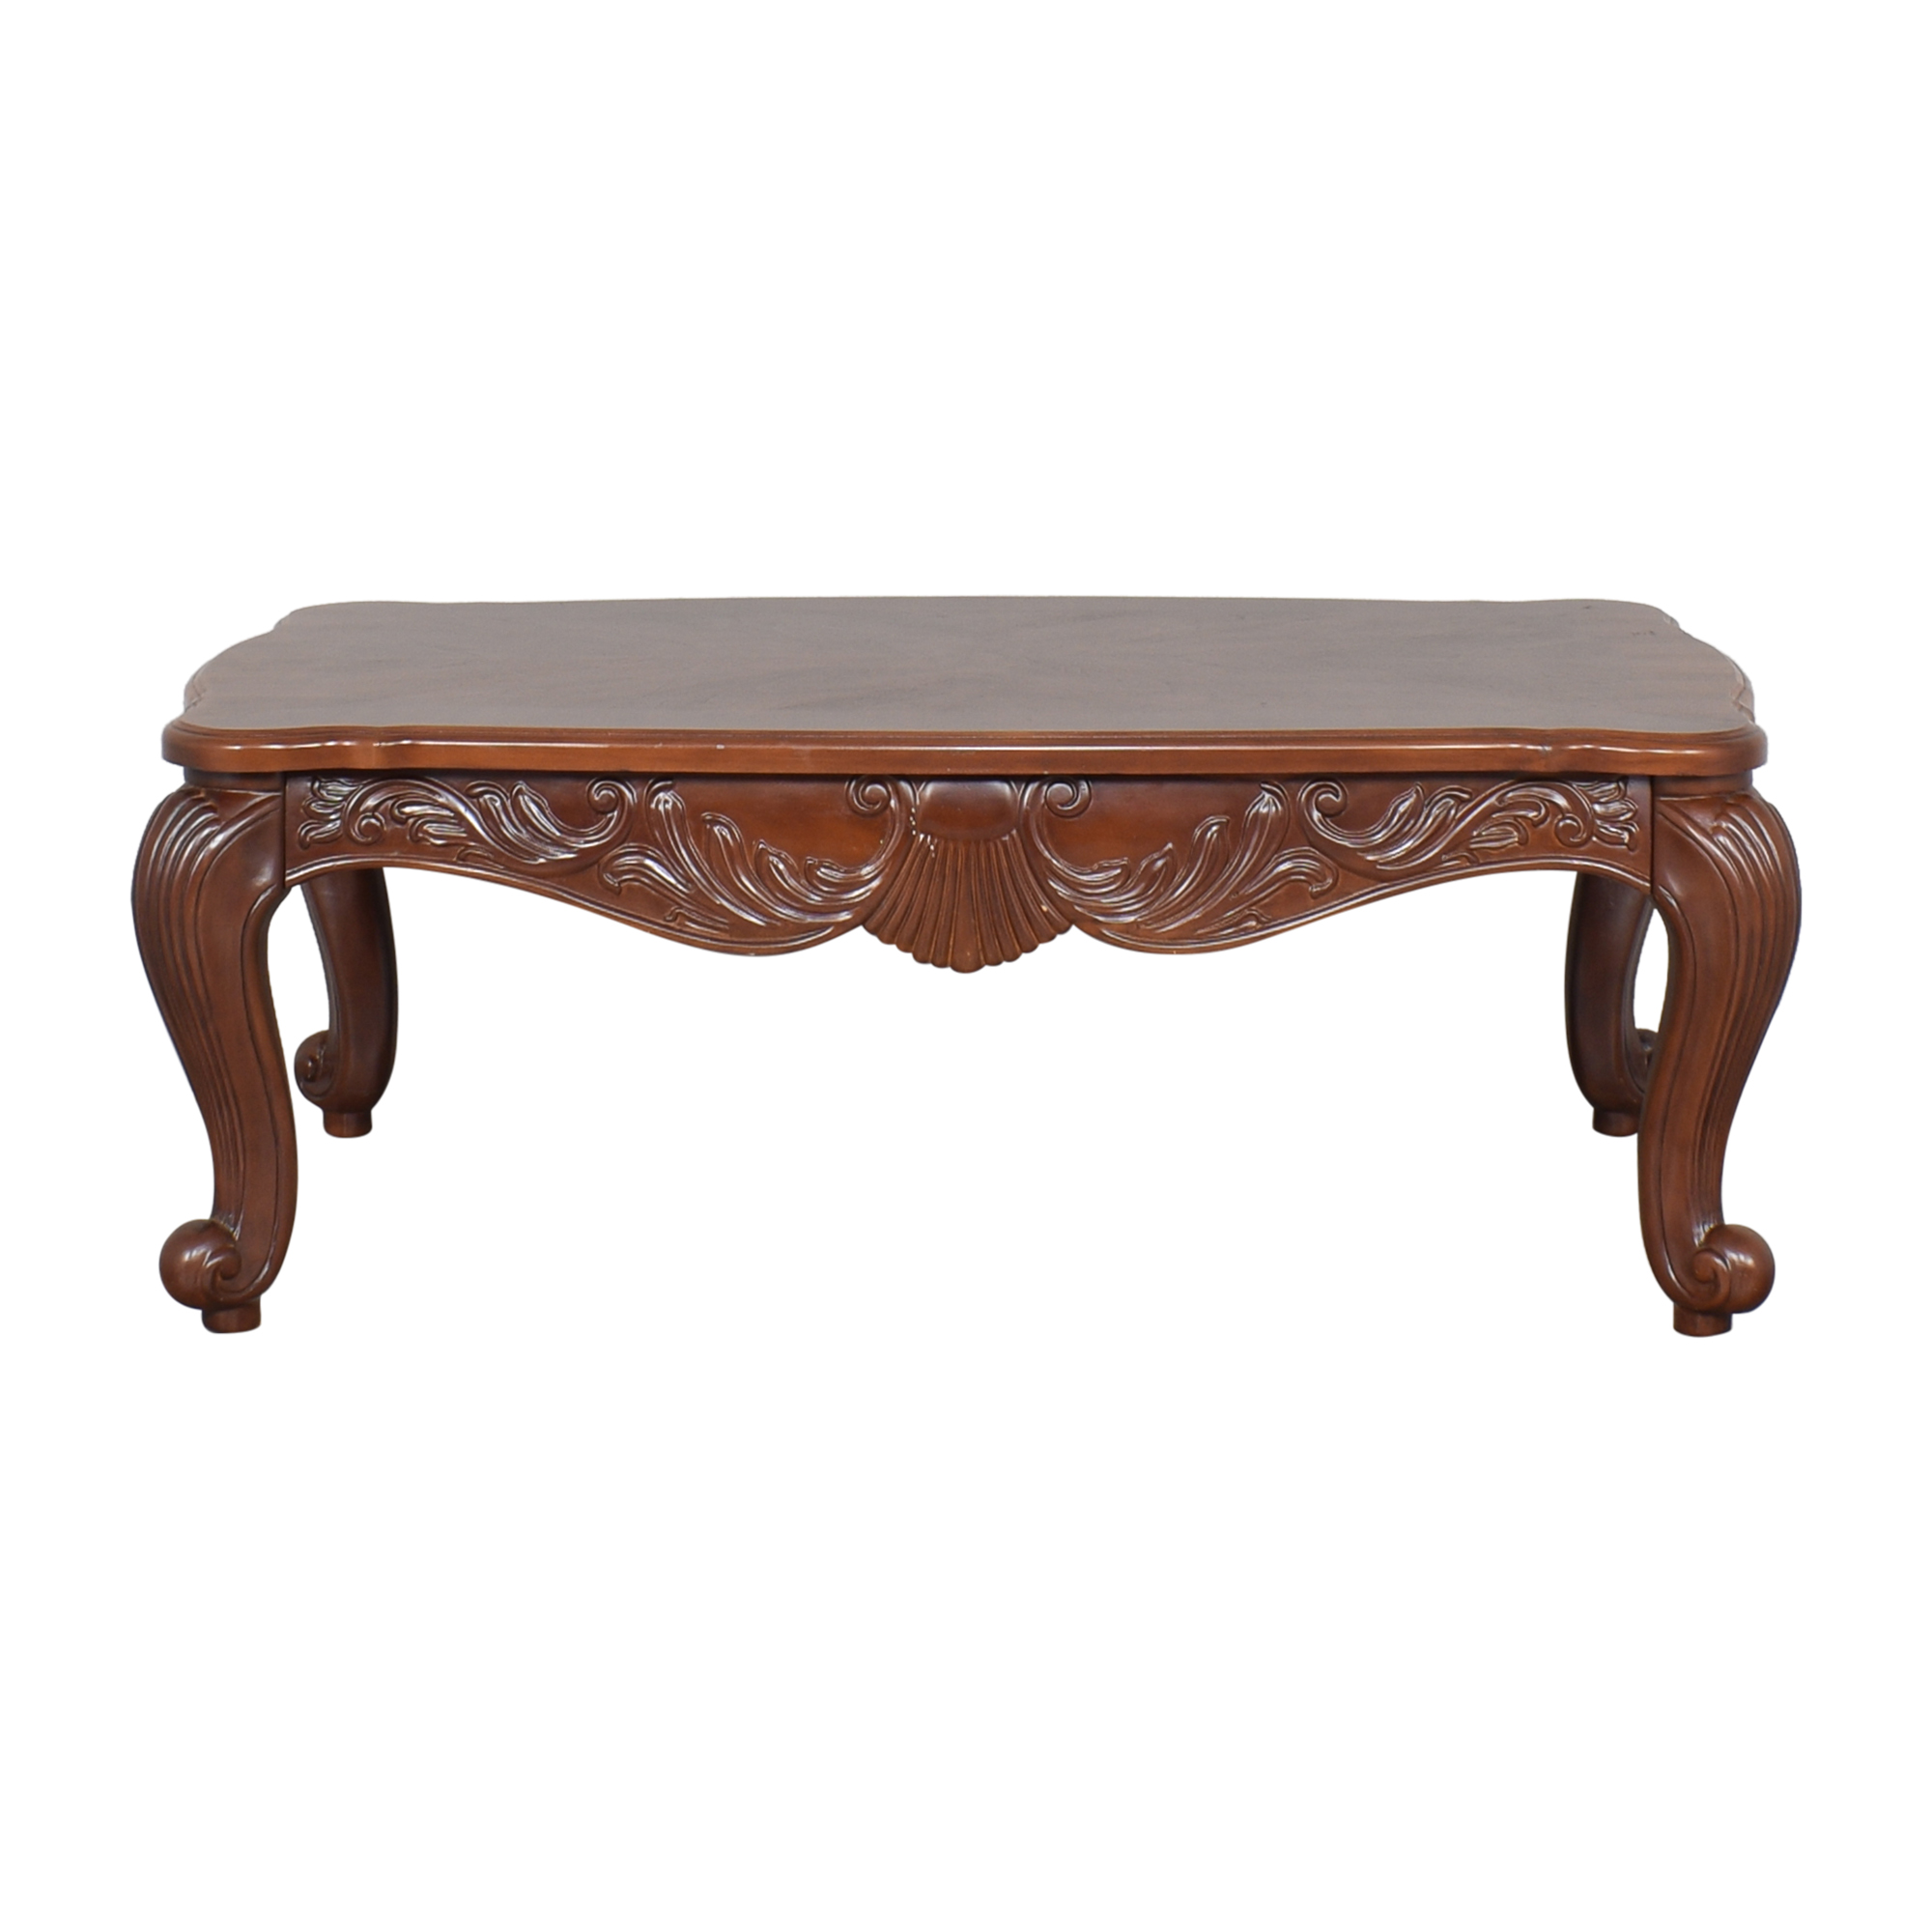 Coaster Fine Furniture Coaster Fine Furniture Venice Coffee Table discount